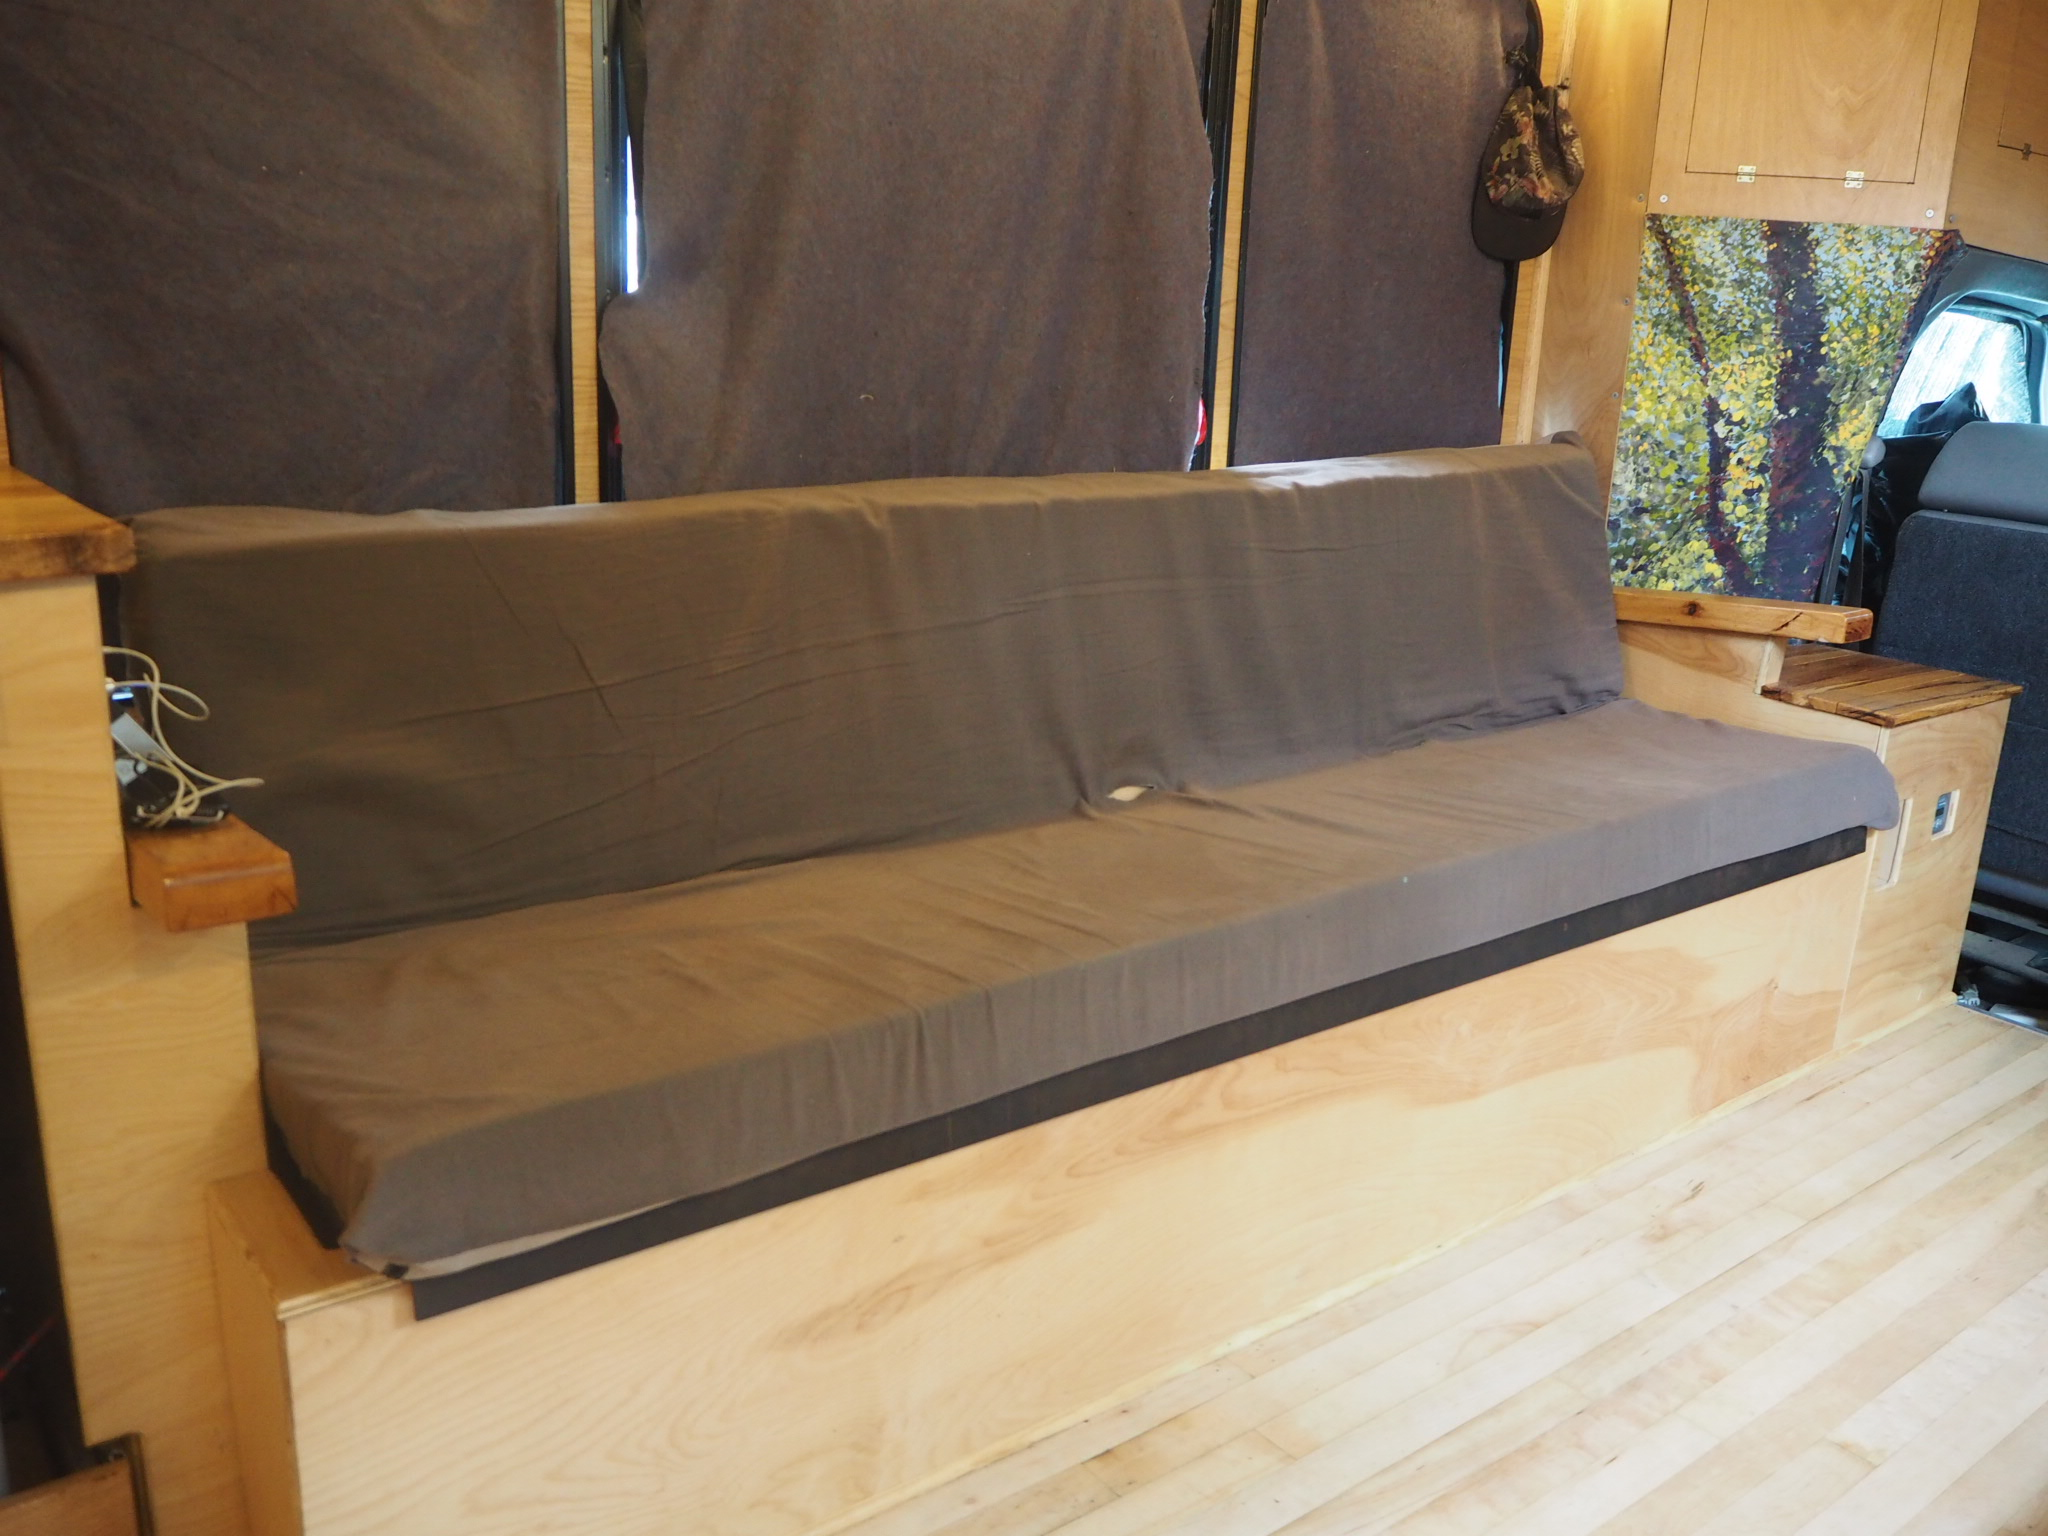 Sofa Van Lifa Living Rock N Roll Hinge Bed Couch Pros And Cons The Build Van Life